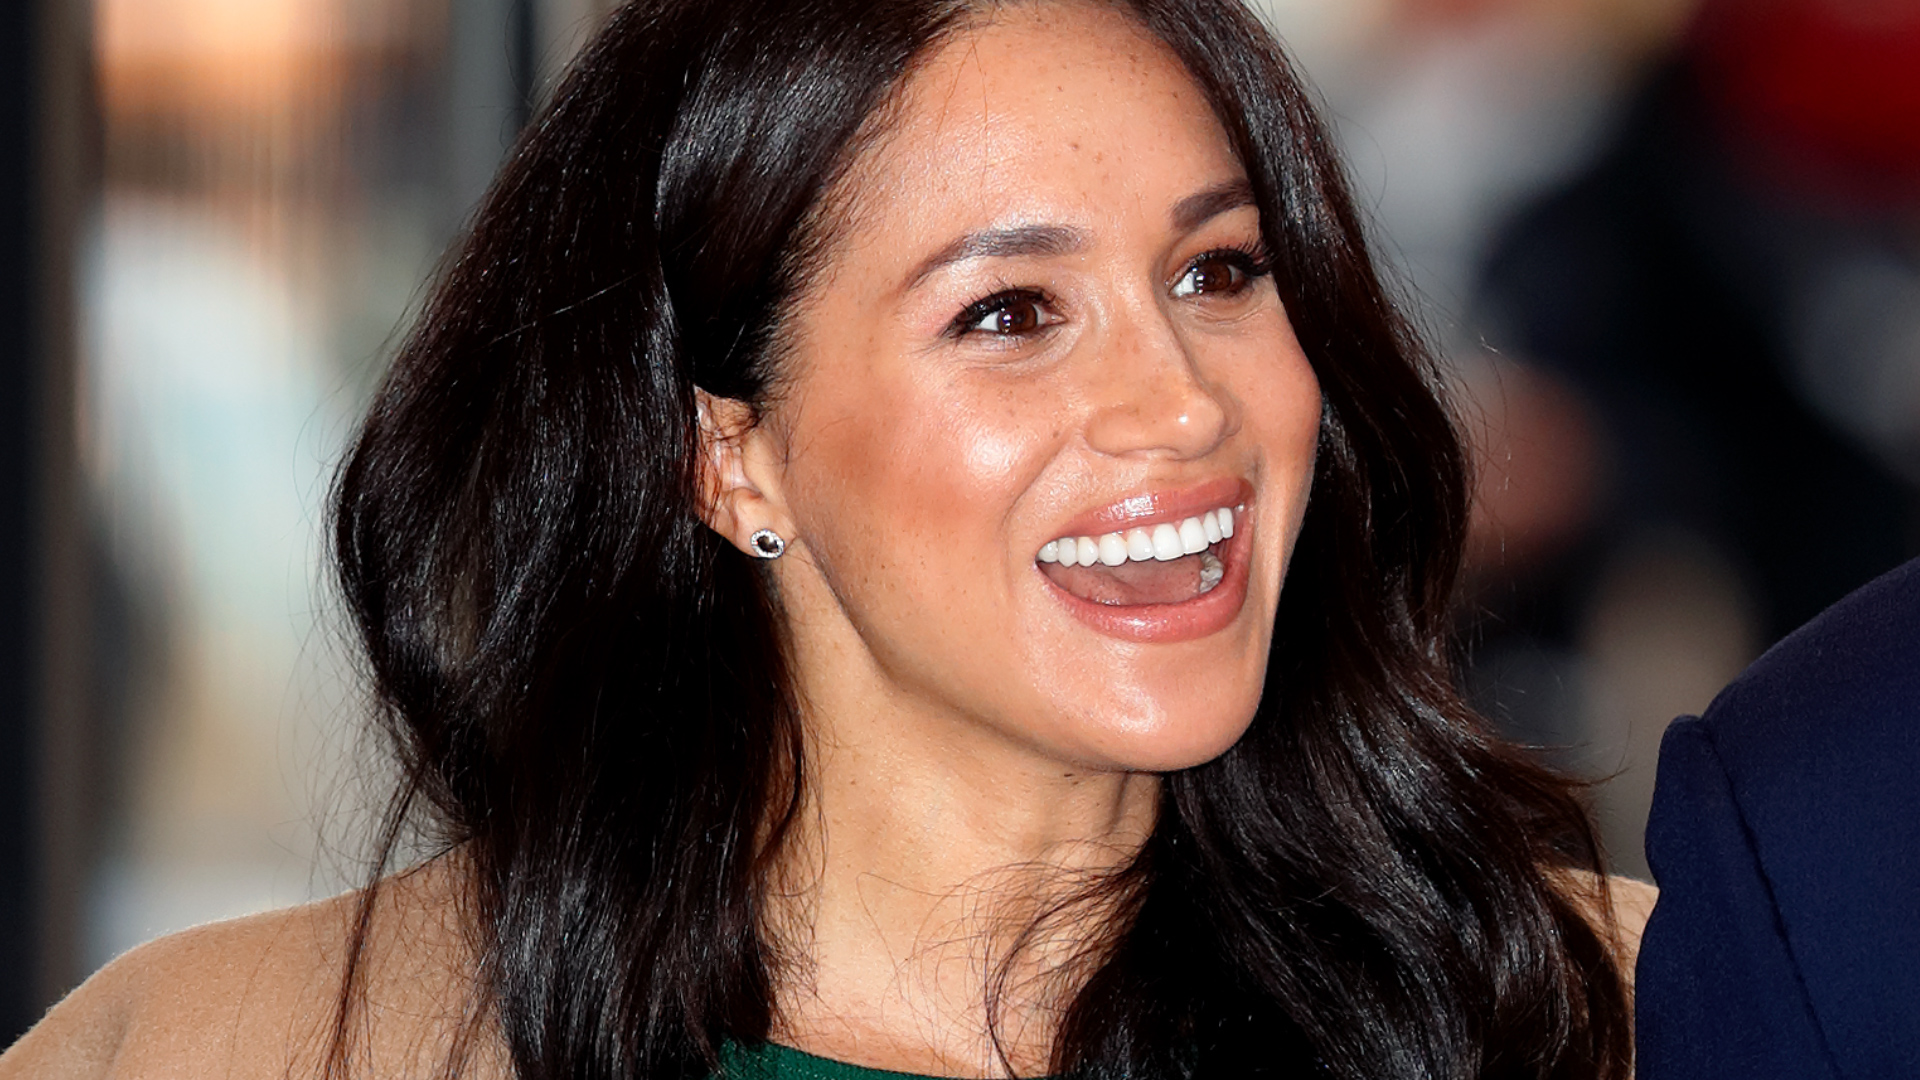 Meghan Markle Spotted Smiling In First London Sighting Since Royal ...